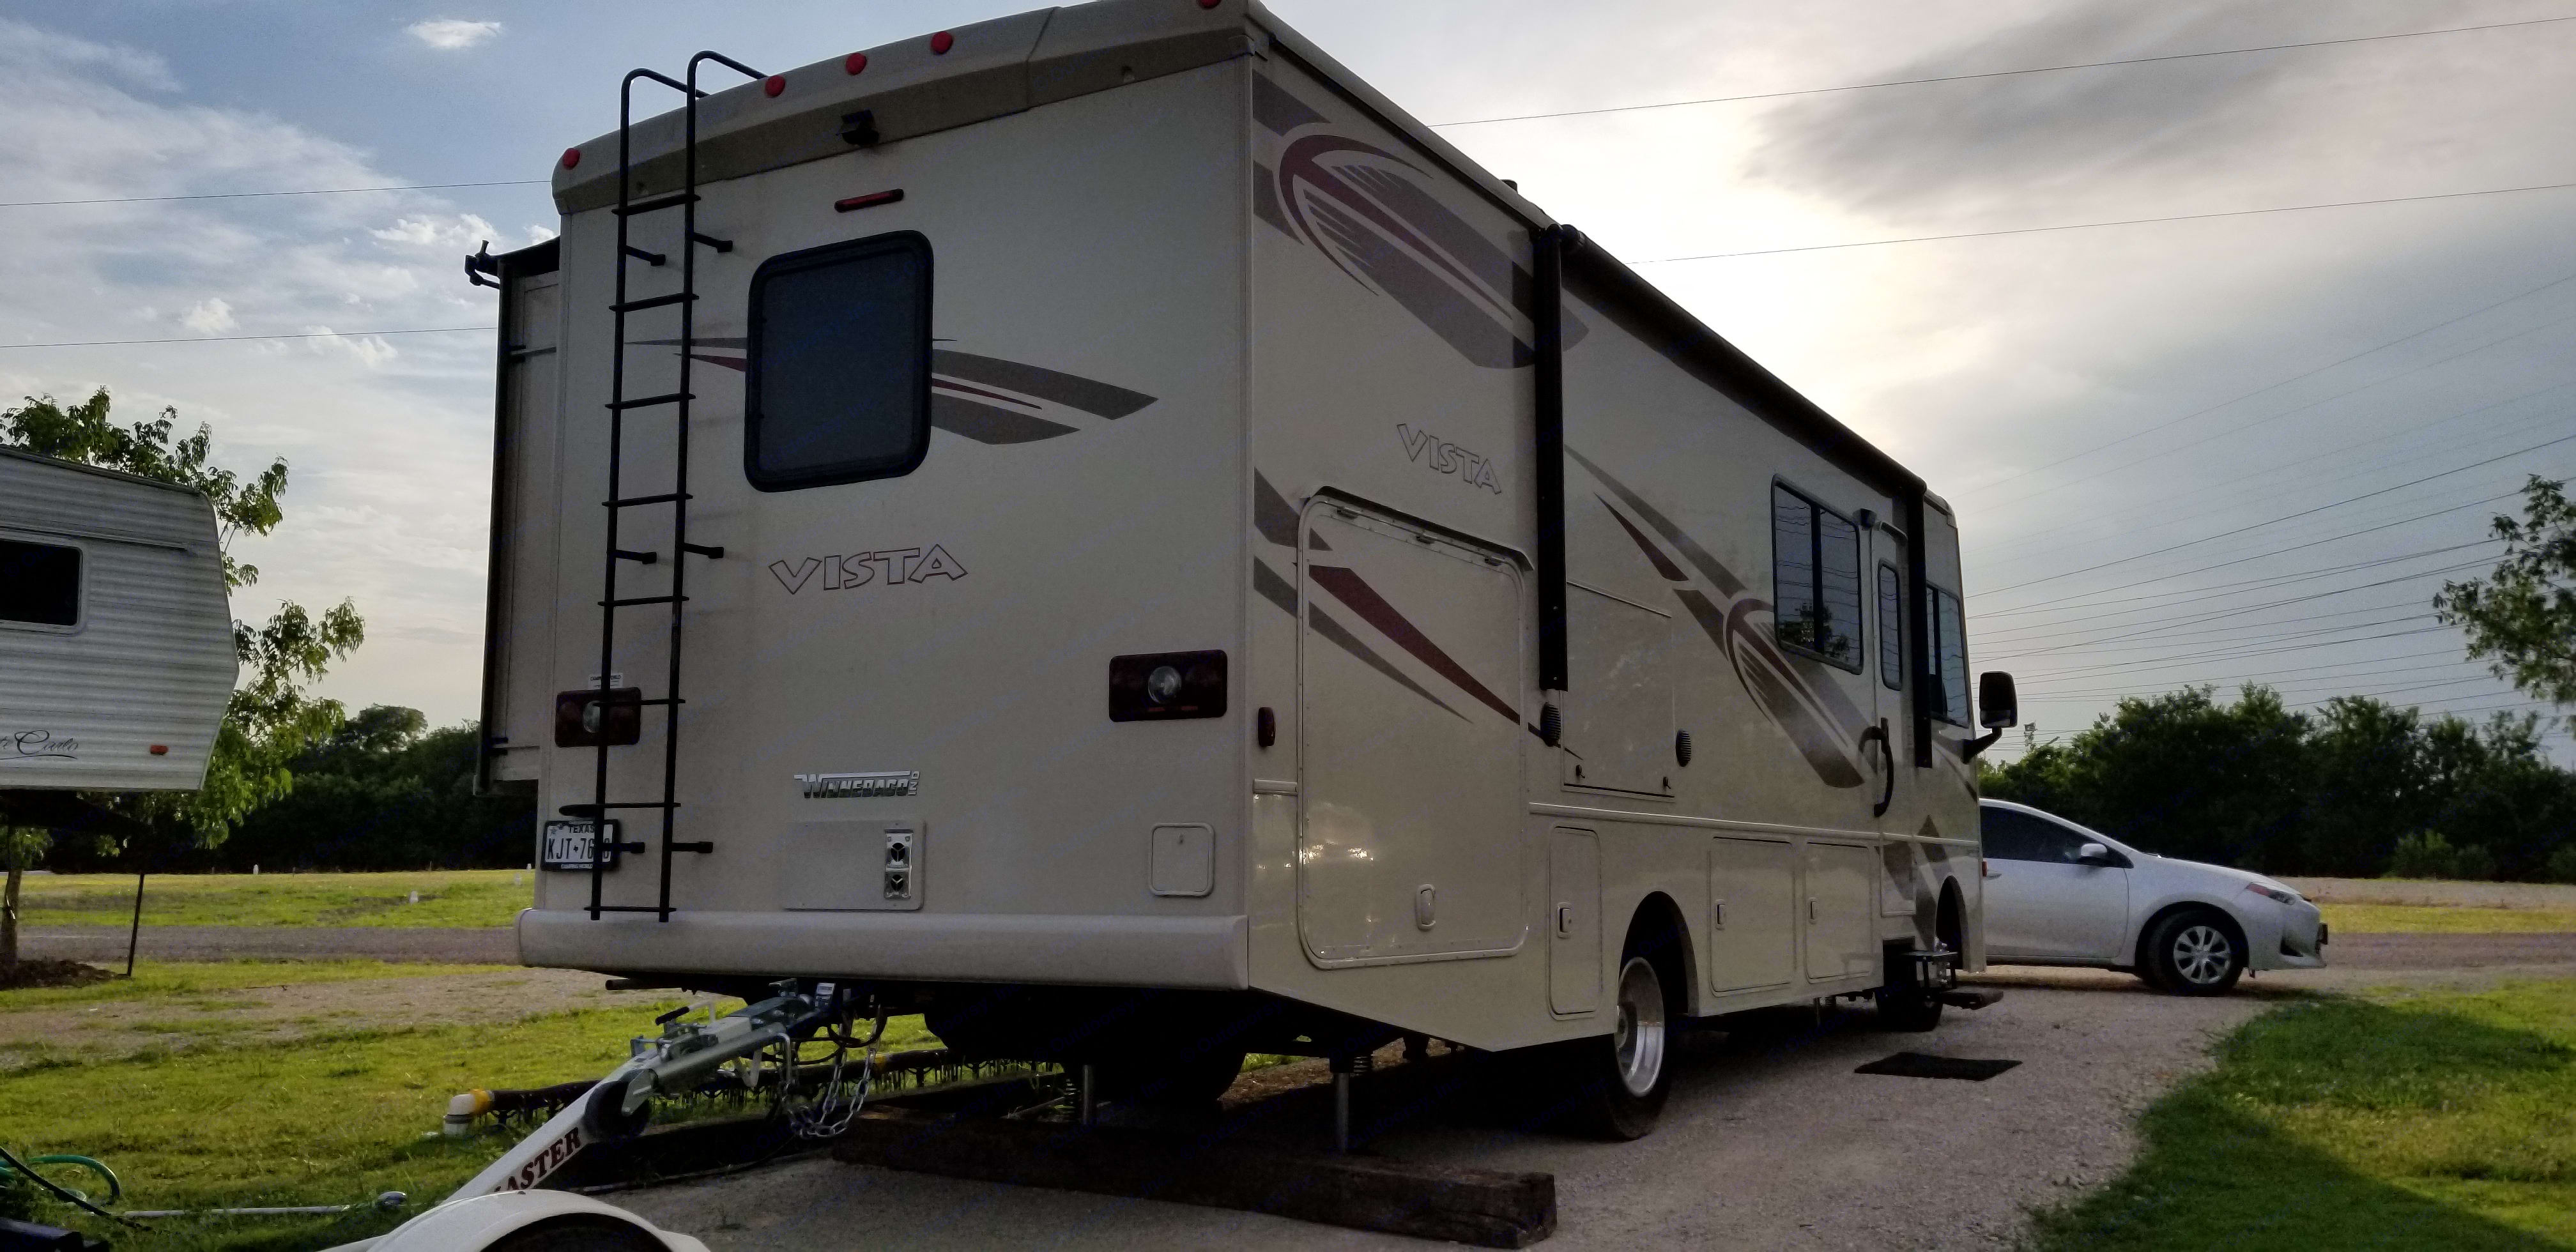 Easy access to the roof, not that you will need to go up there... All vents have covers so you can leave them open while you drive and can be open while raining (some droplets my still get in but nothing major - closing while unattended highly recommended).. Winnebago Vista 2017